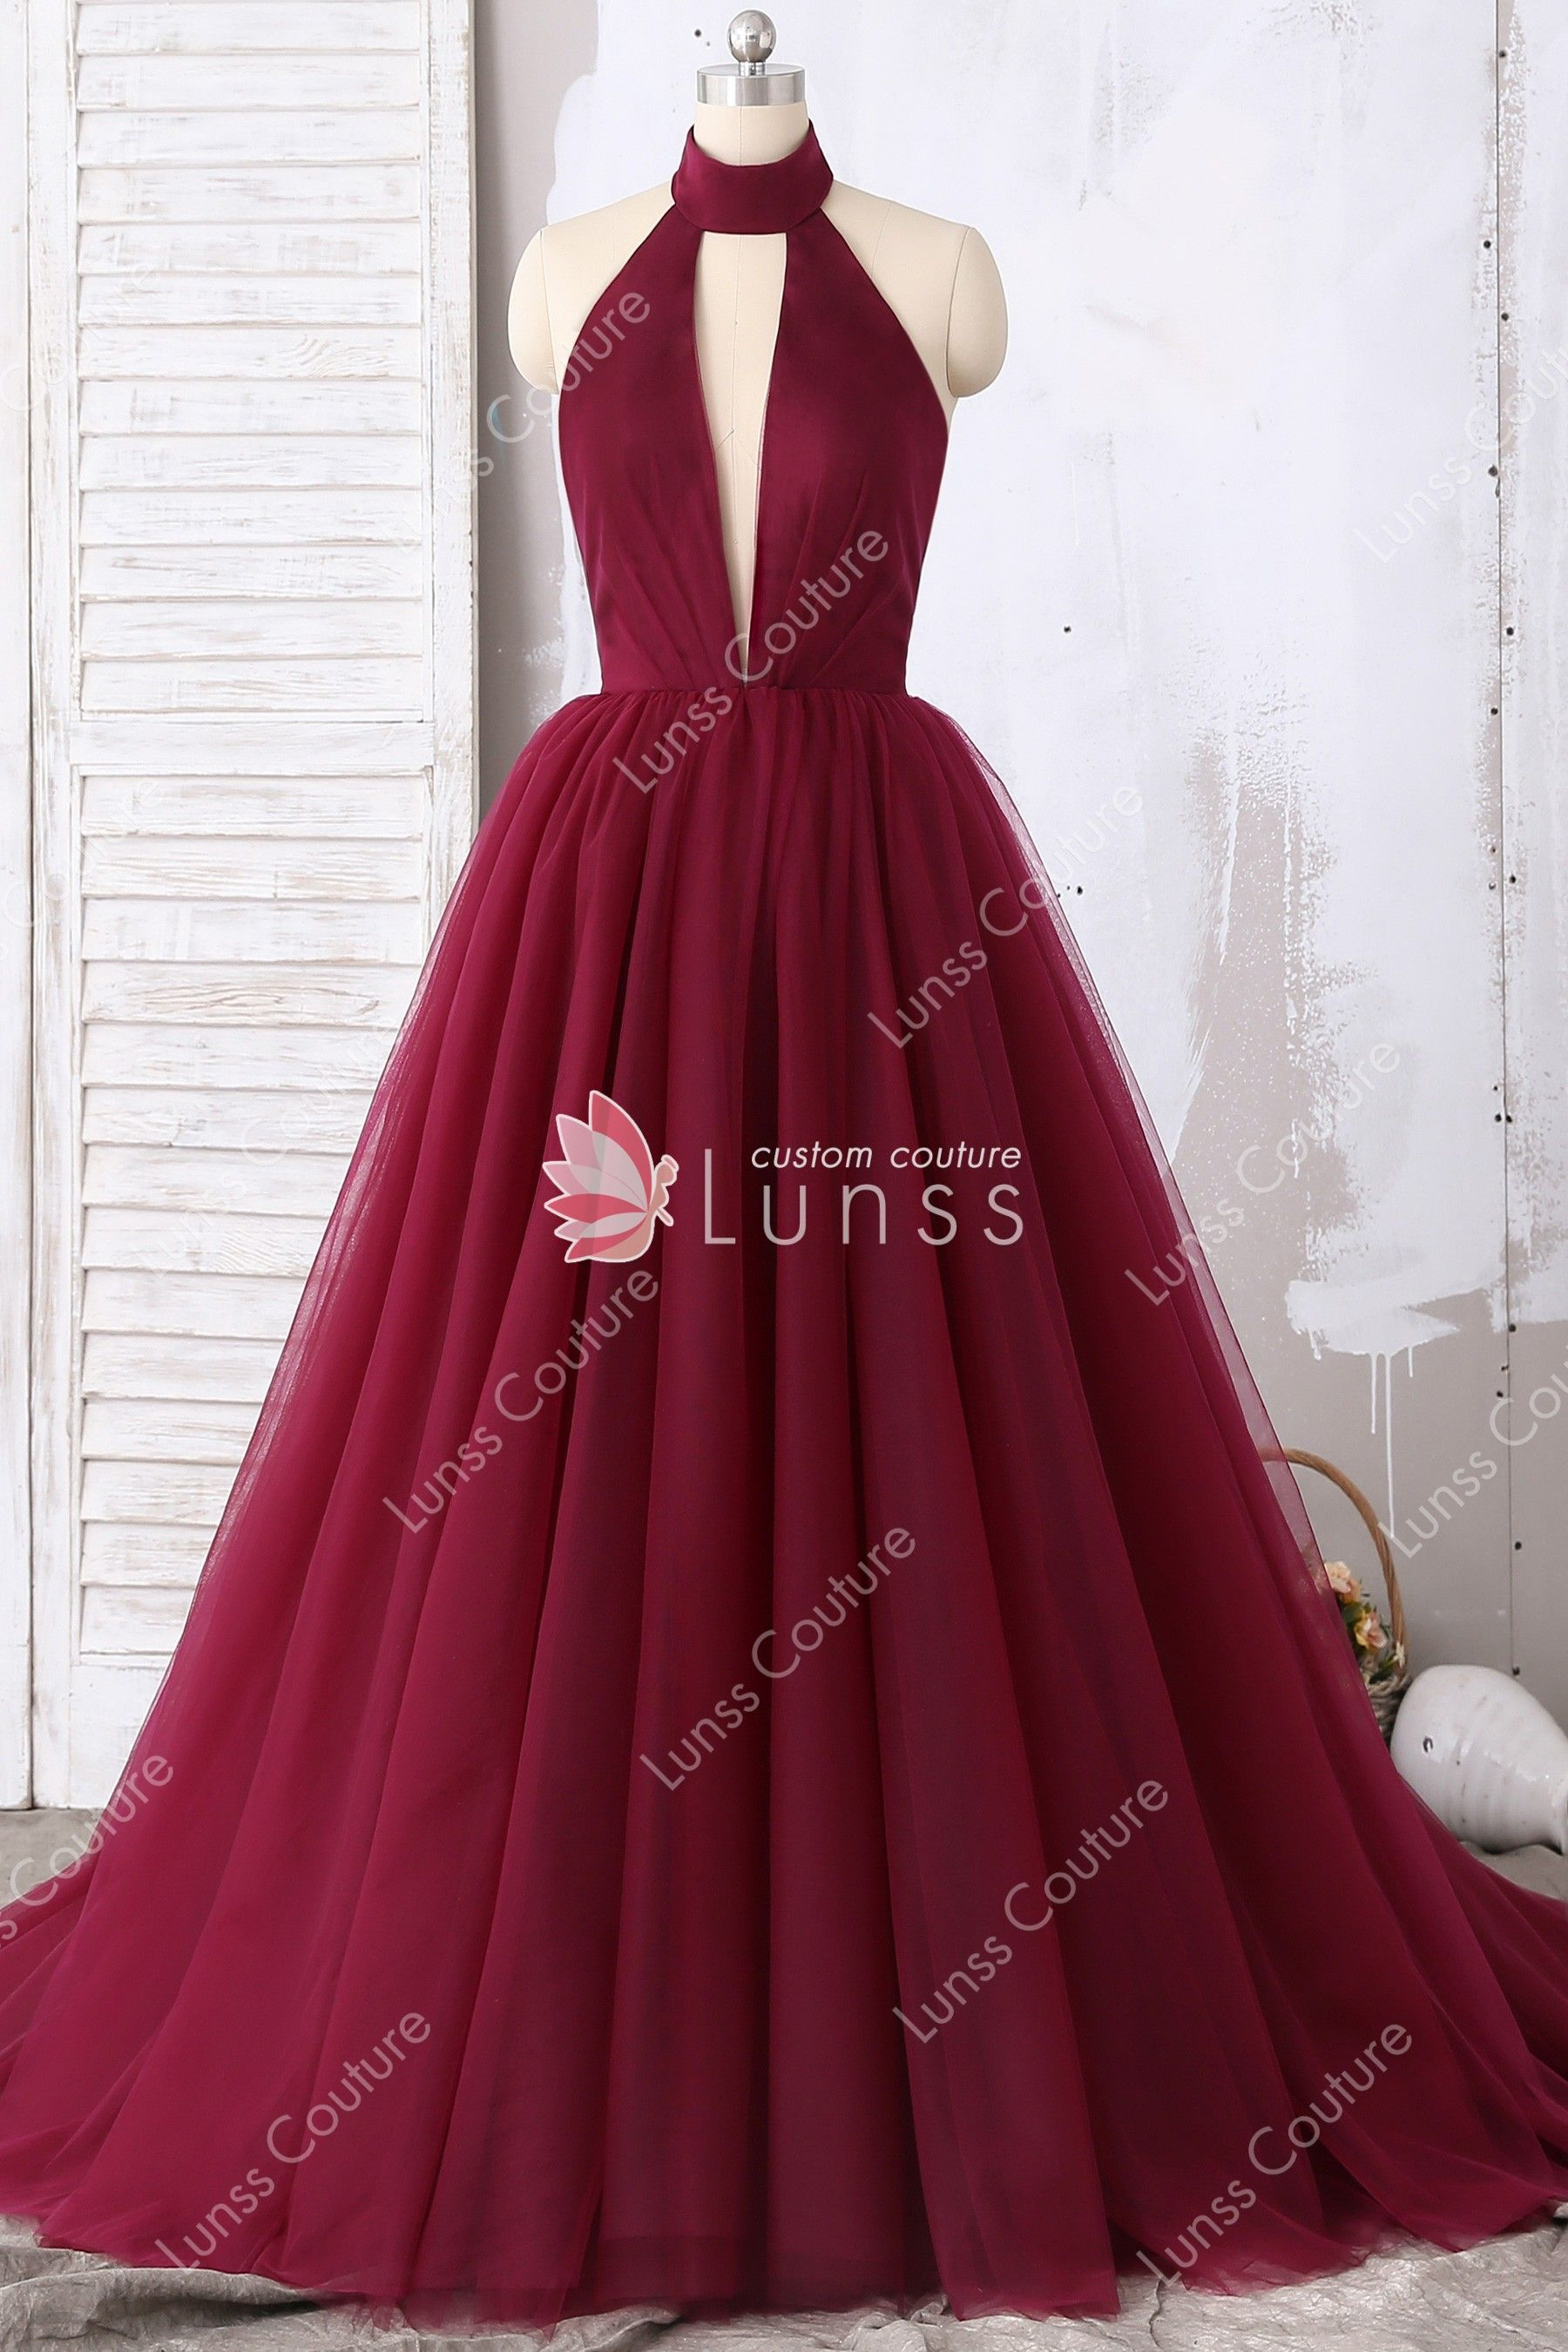 e72d69ee76 This queen style dark wine tulle puffy prom dress features timeless ball  gown silhouette, alluring high neck plunging, pleated bodice with an open  back.